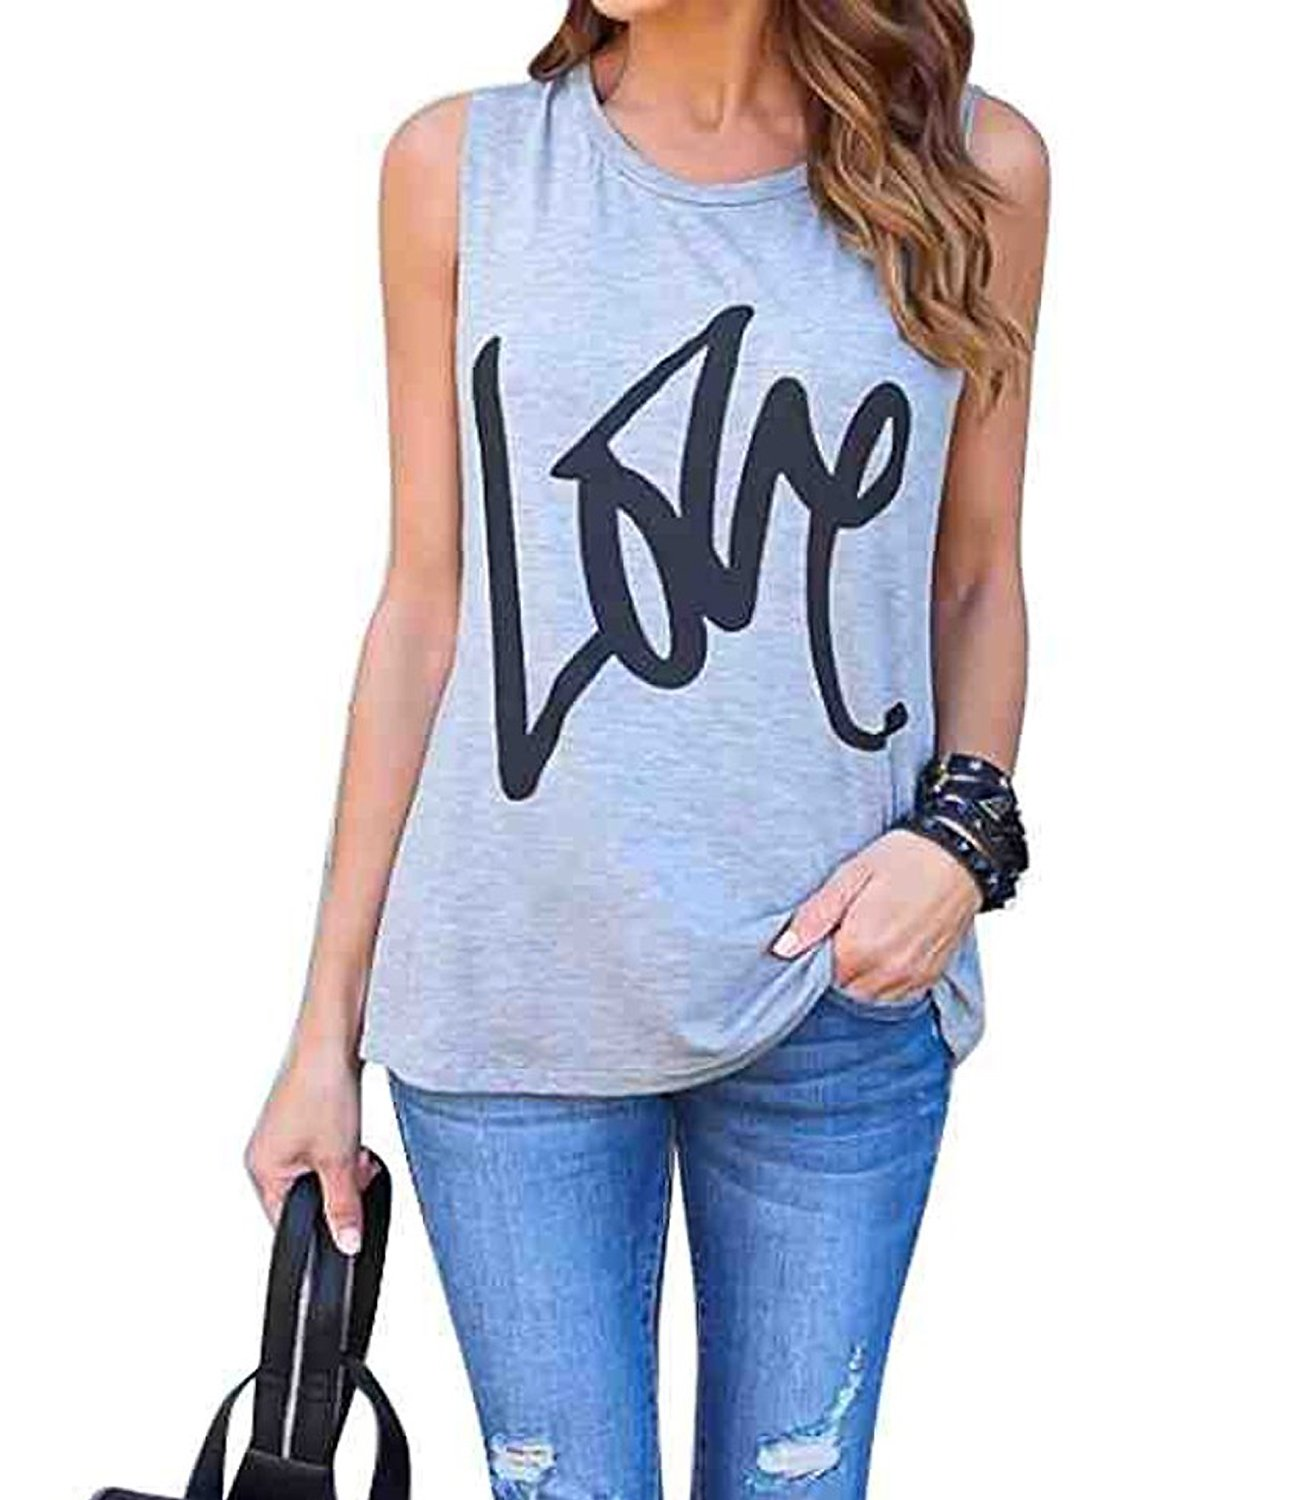 FAYALEQ Womens Love Letters Print Tank Tops Sleeveless Casual Vest T-Shirt Tees Blouse Size US-S/Medium (Gray)